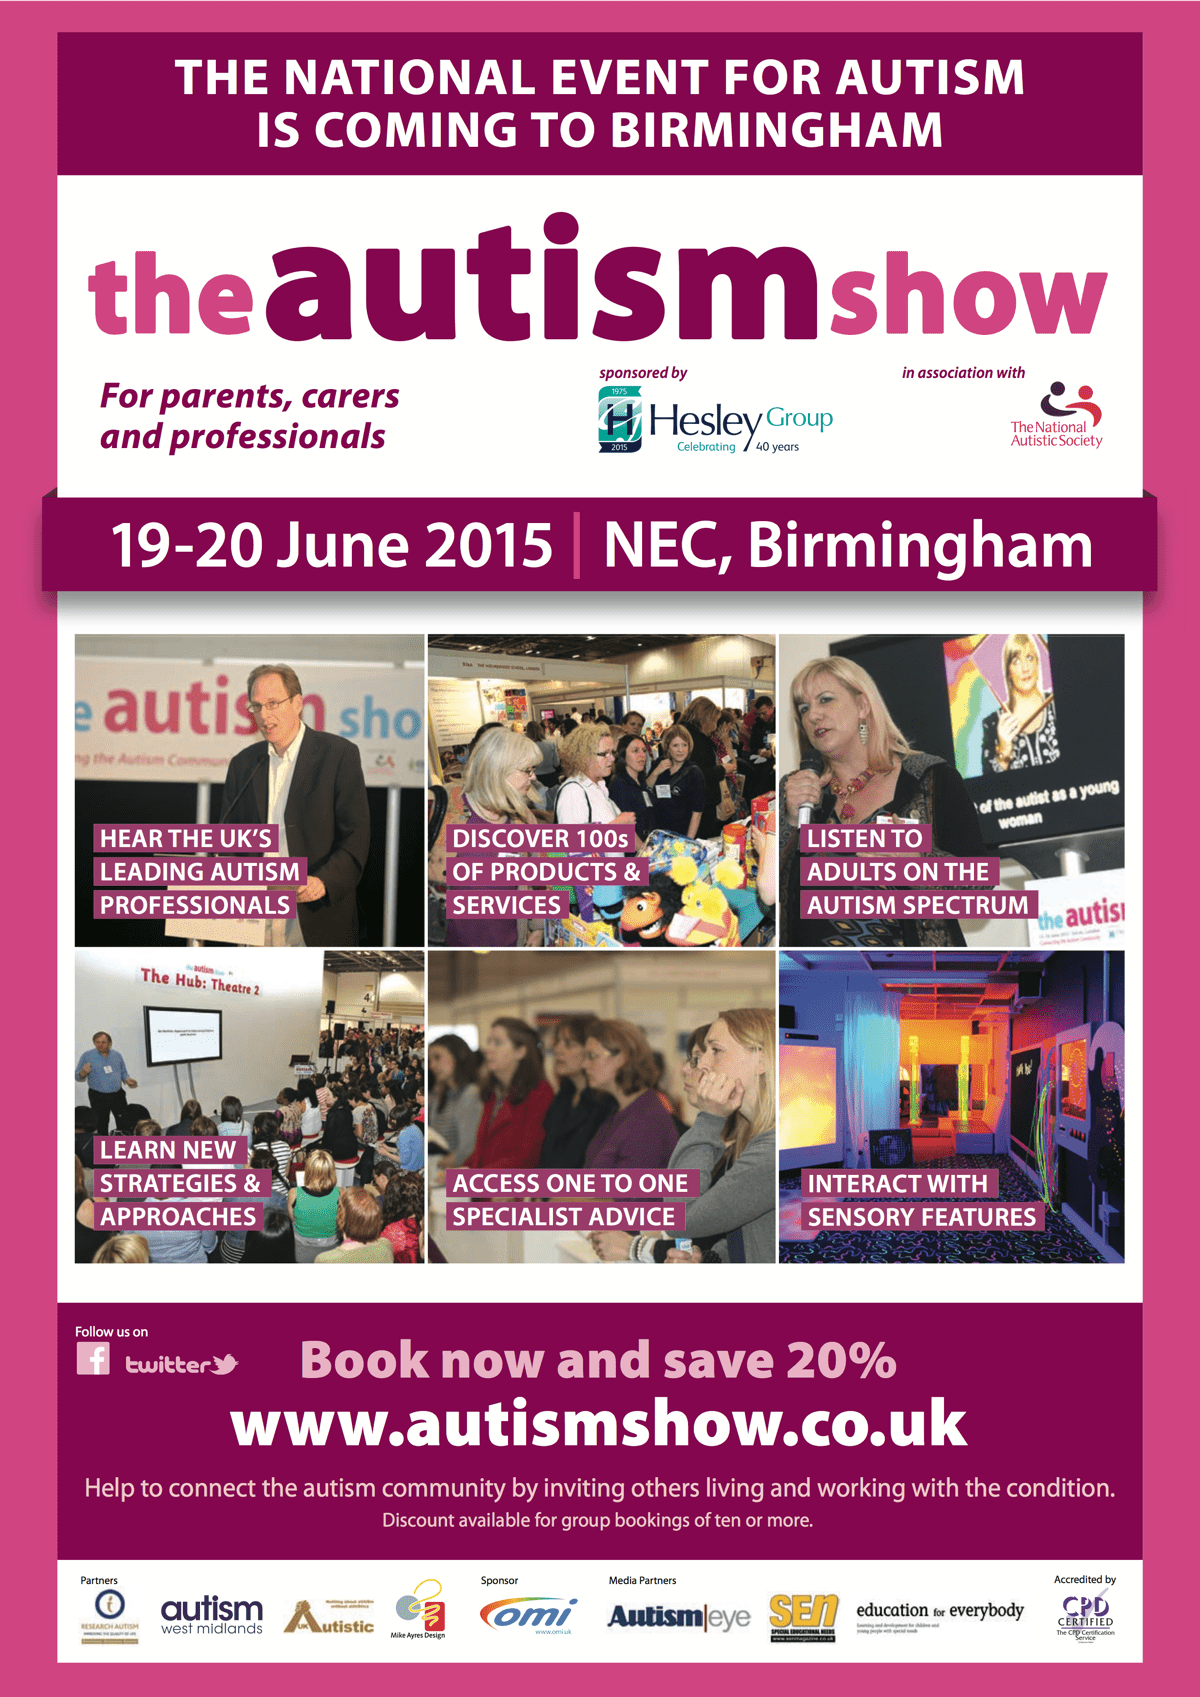 The Autism Show 2015 is coming to the NEC Birmingham,19-20 June.